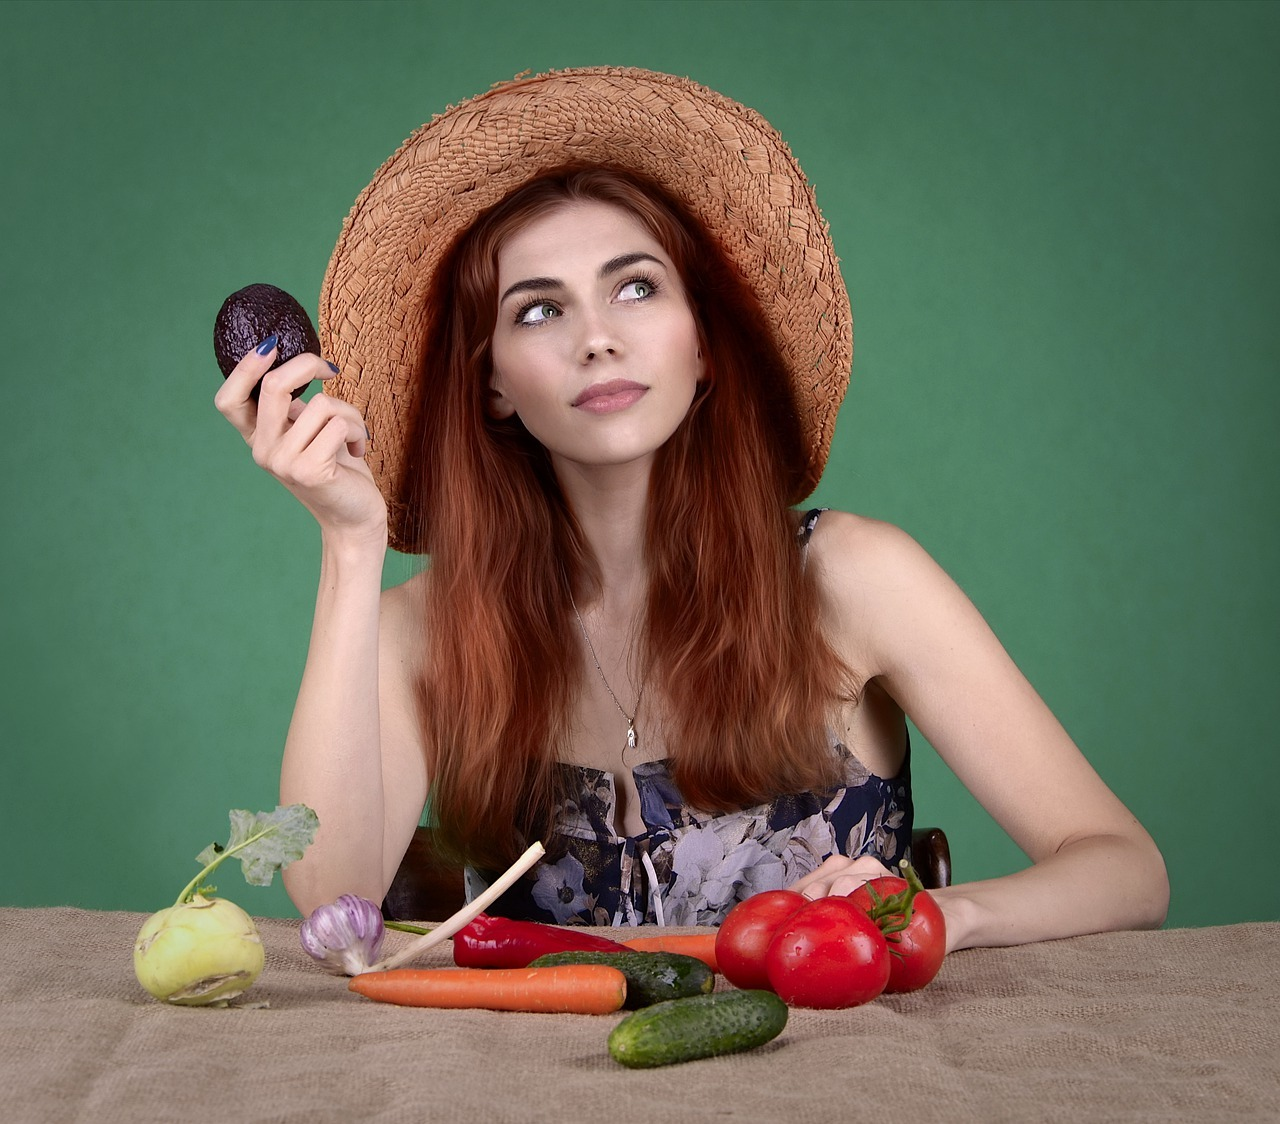 traveling while being on a vegan diet